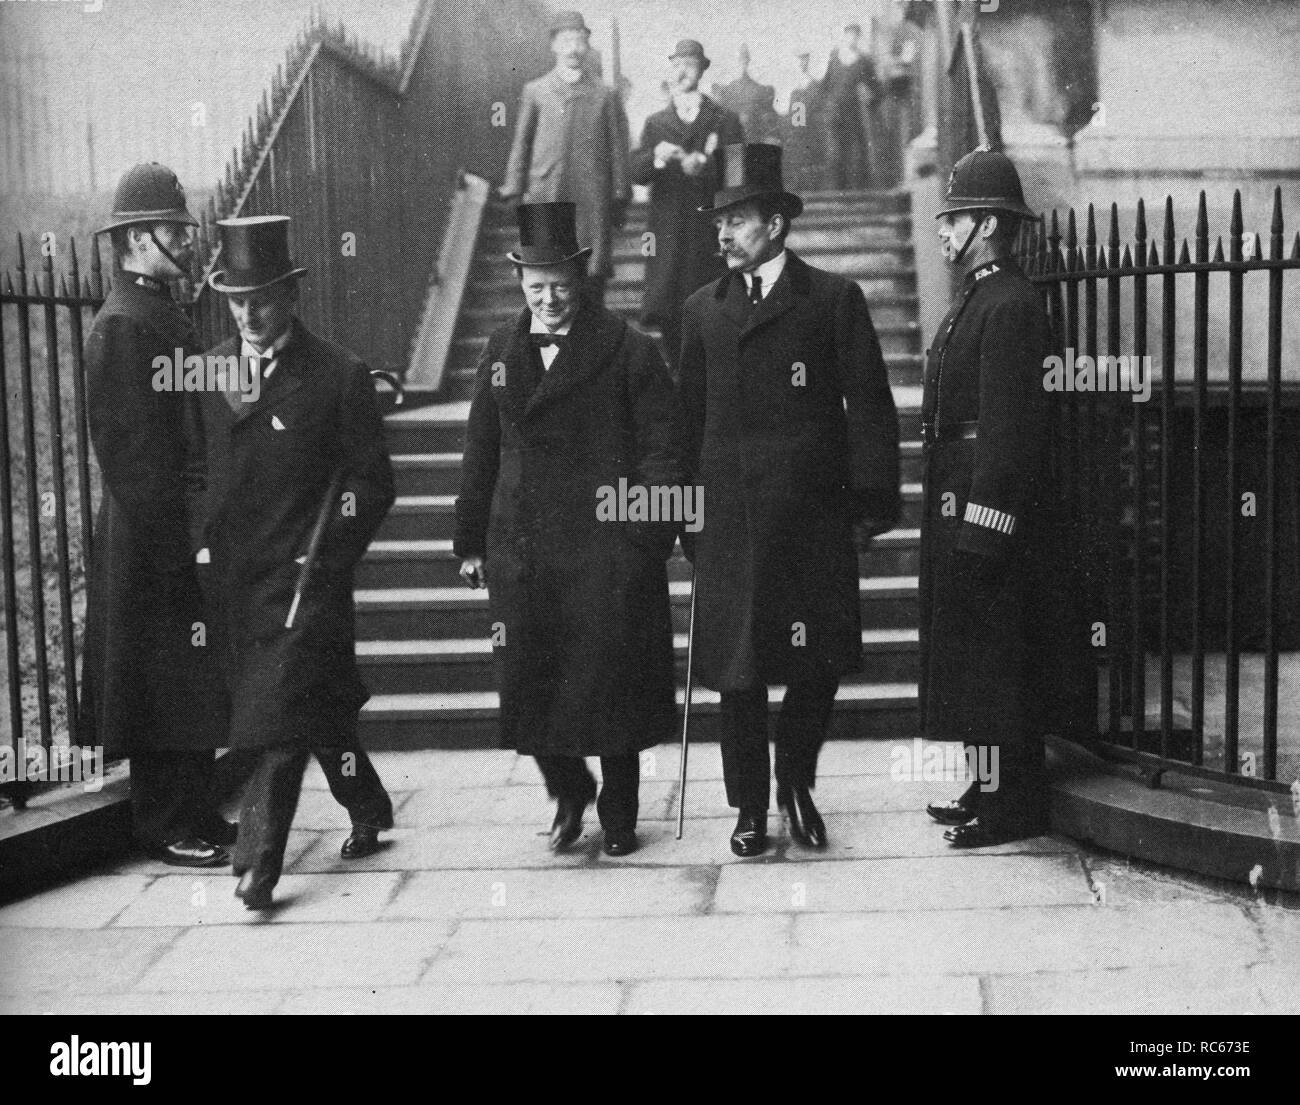 Sir Edward Grey,Winston Churchill and Lord Crewe leaving a cabinet meeting after the Liberal victory in the General Election on 14th February 1910 - Stock Image